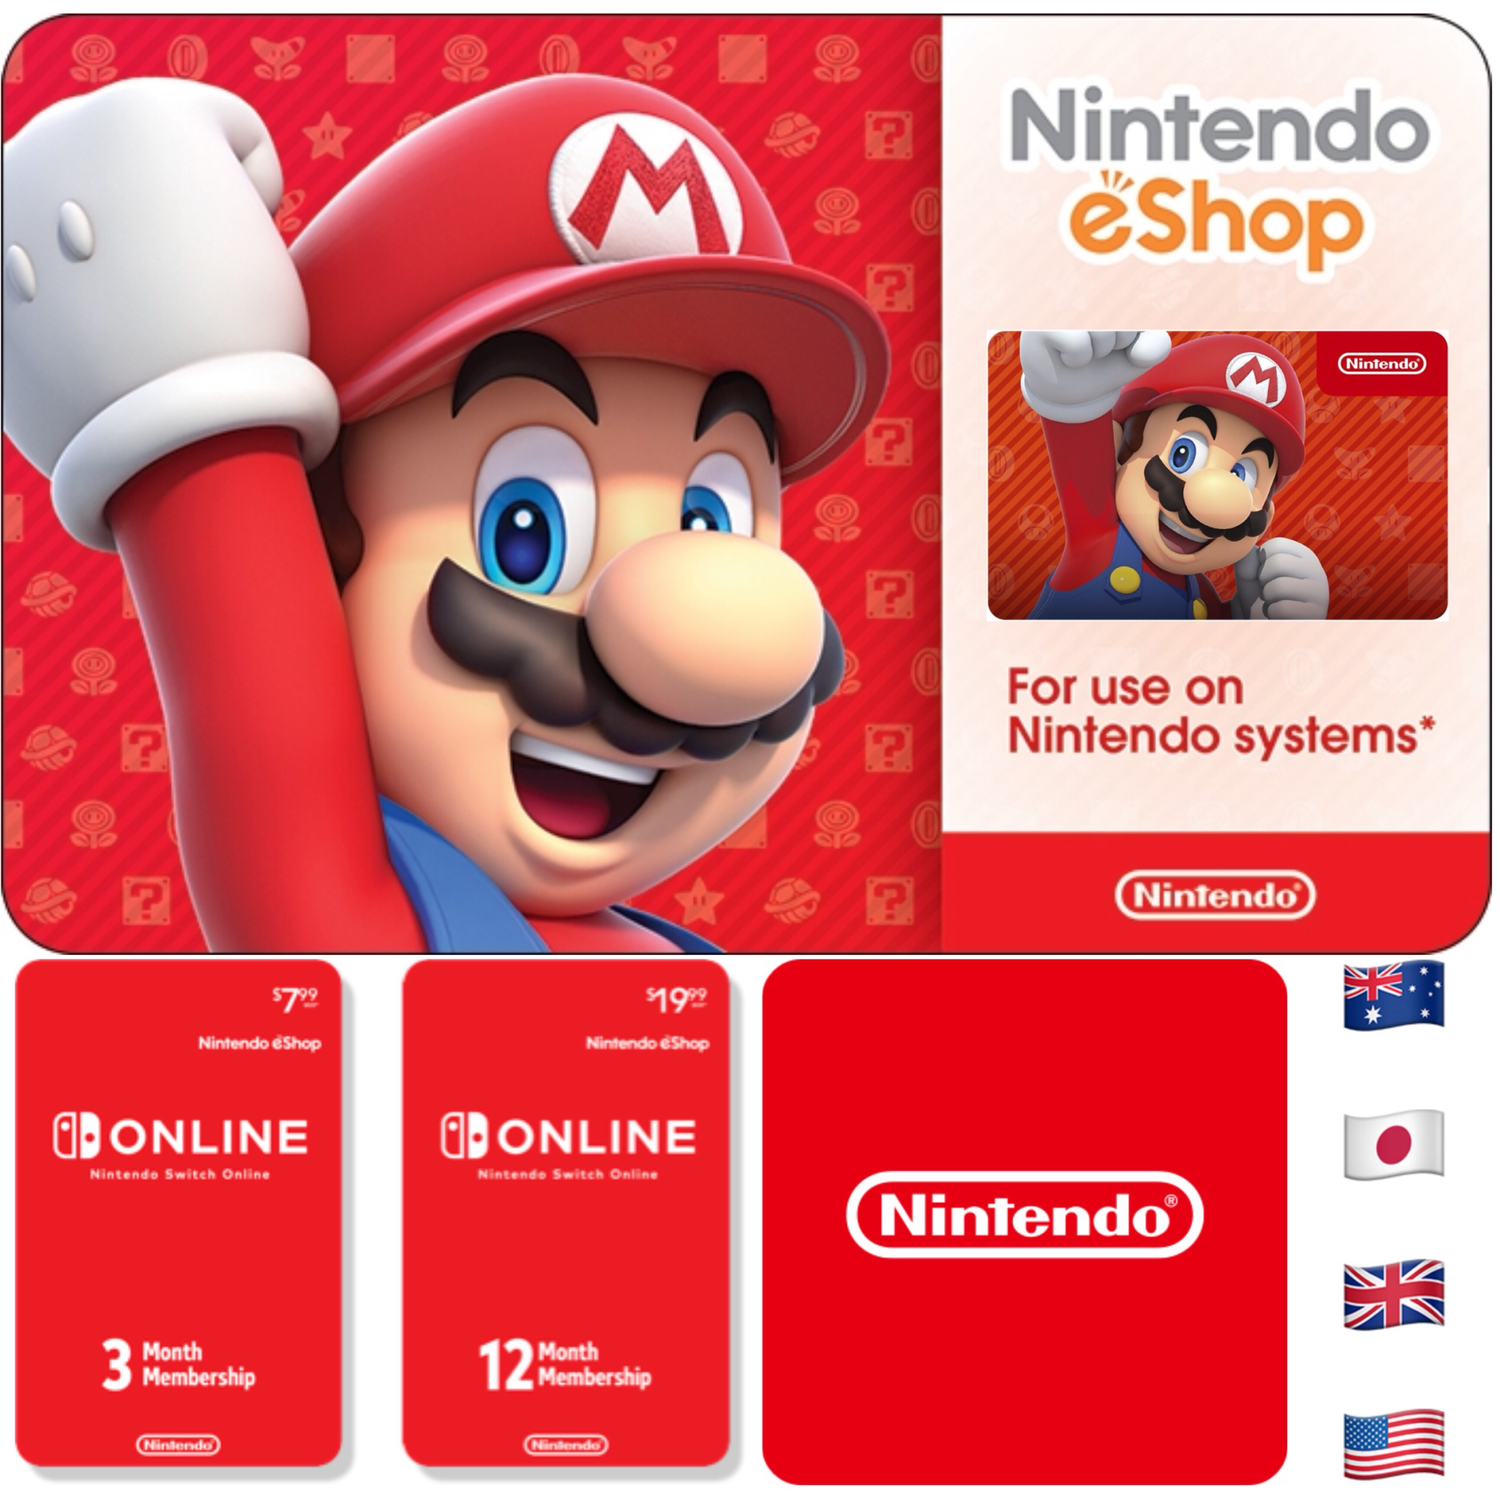 Nintendo eShop Prepaid Gift Cards - Switch / Wii U / 3DS